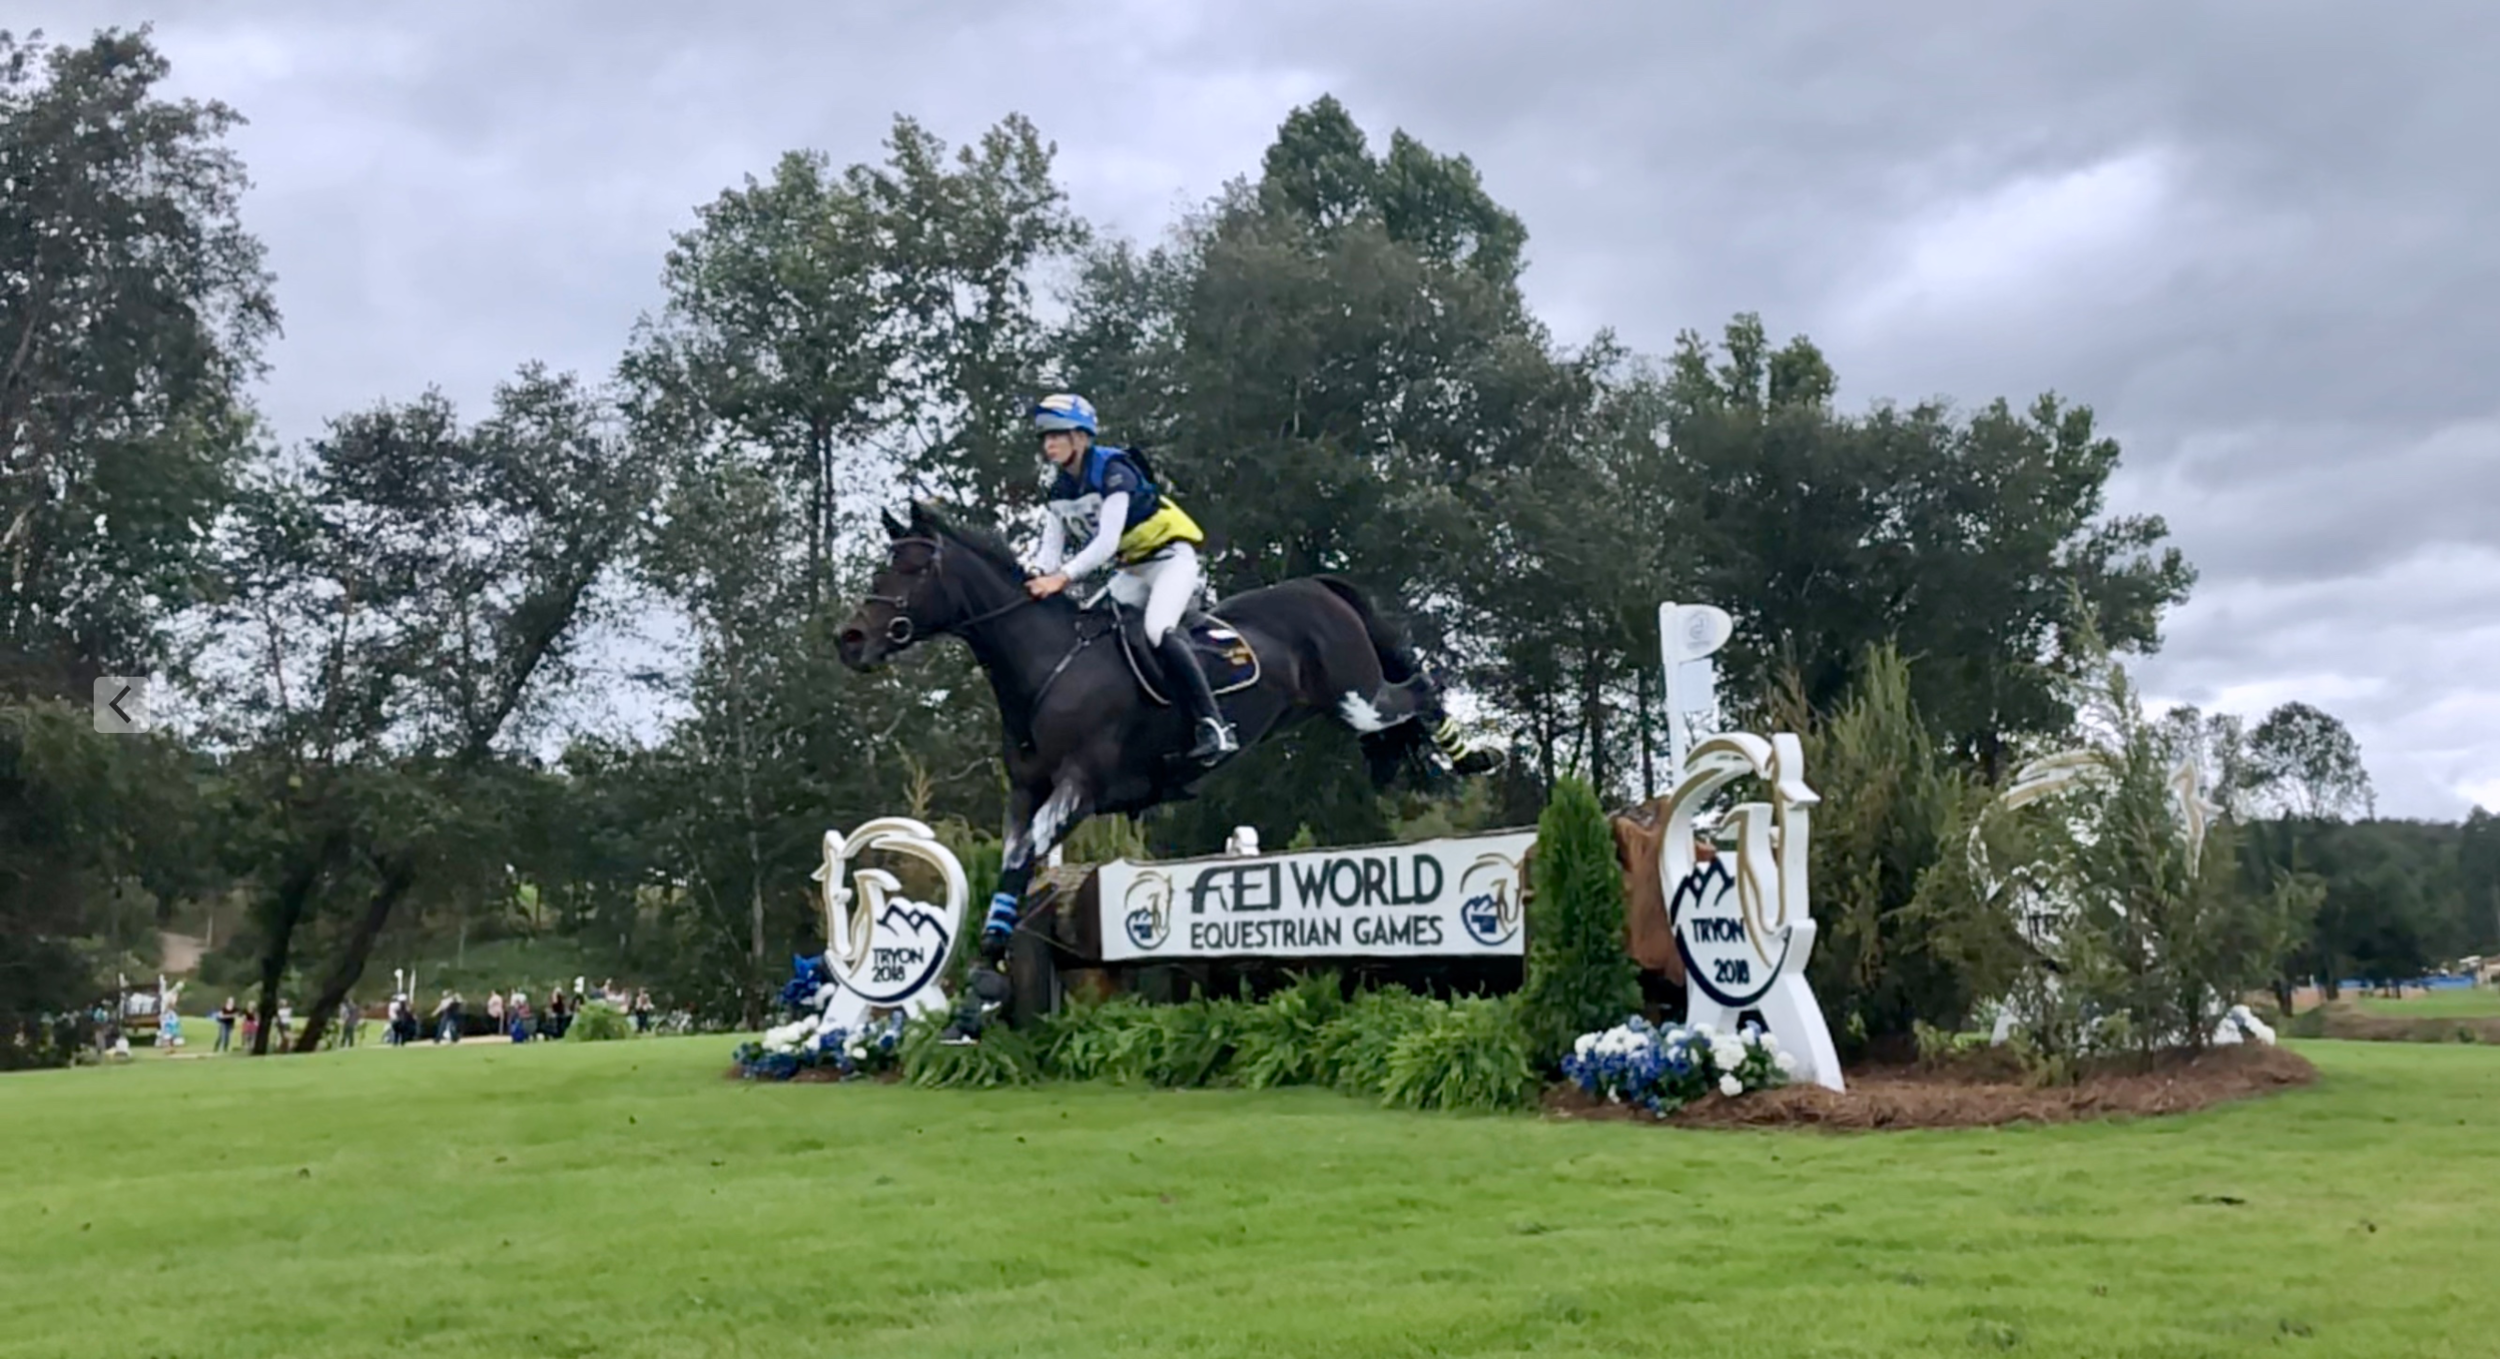 Tryon 2018 FEI World Equestrian Games: Eventing Cross-Country Phase September 15, 2018 (© 2018 Cara Brewton)